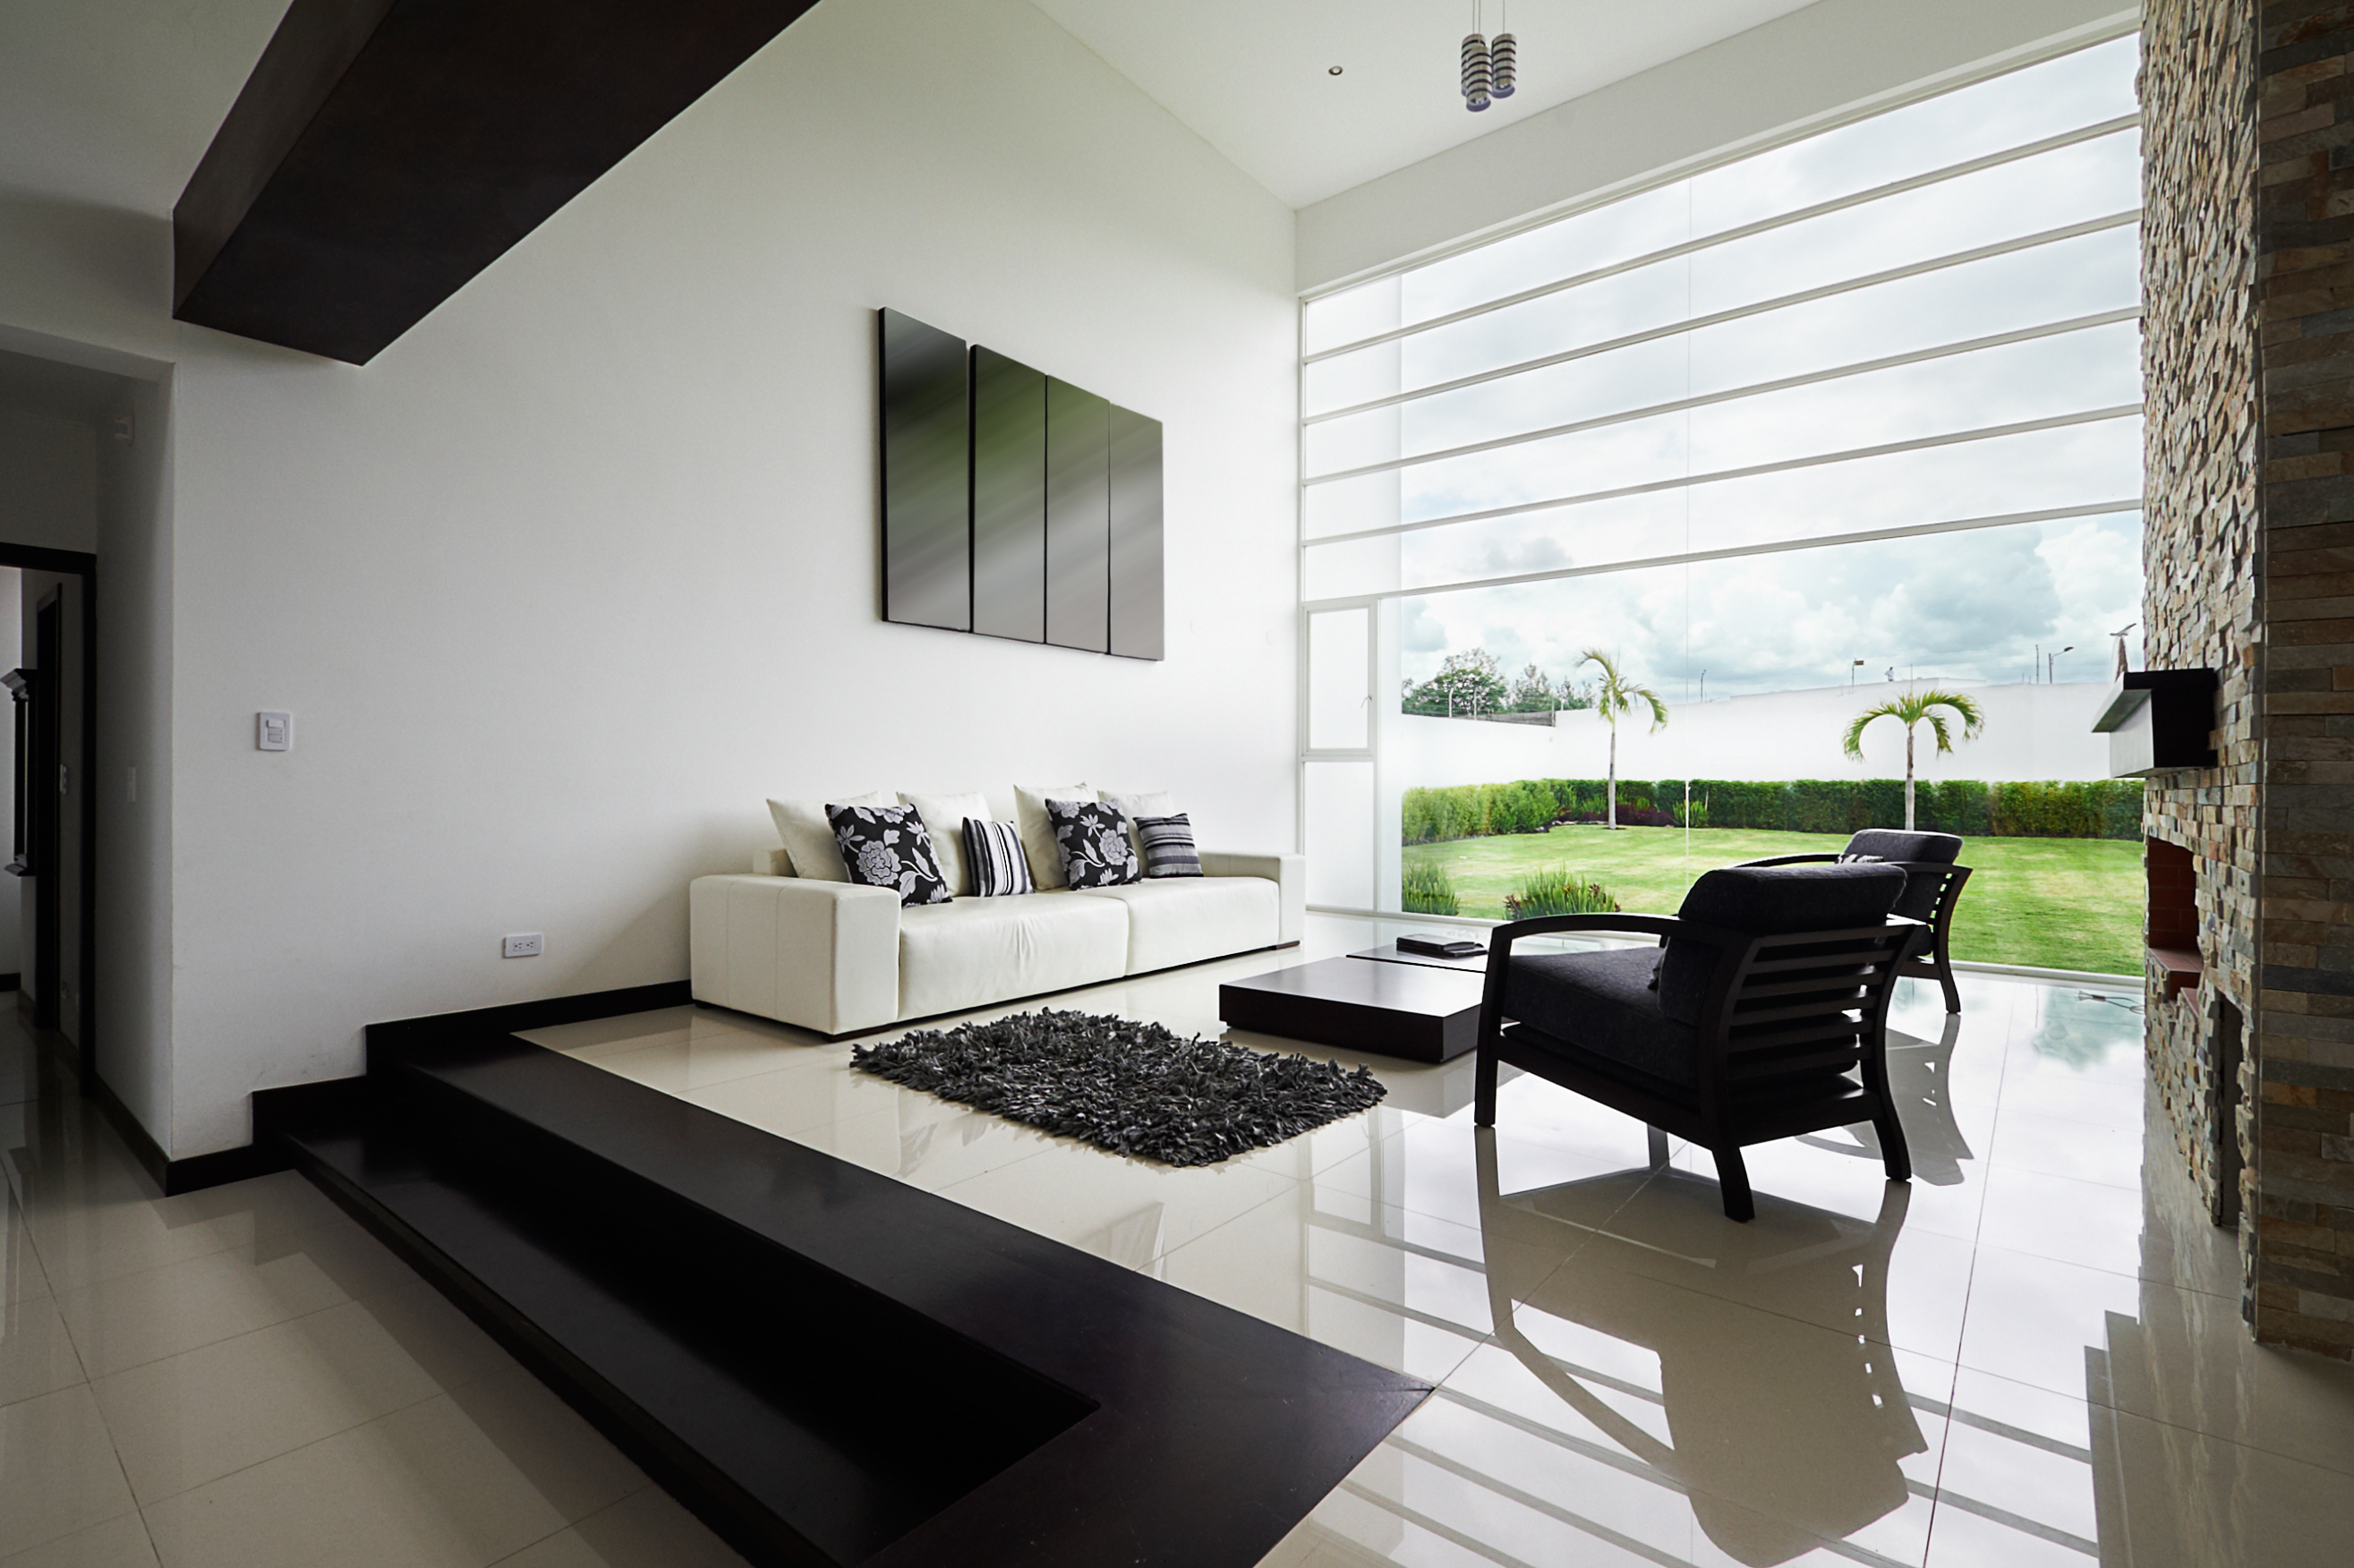 The Importance of Sight Lines in Interior Design They&39;re More Important Than You Think